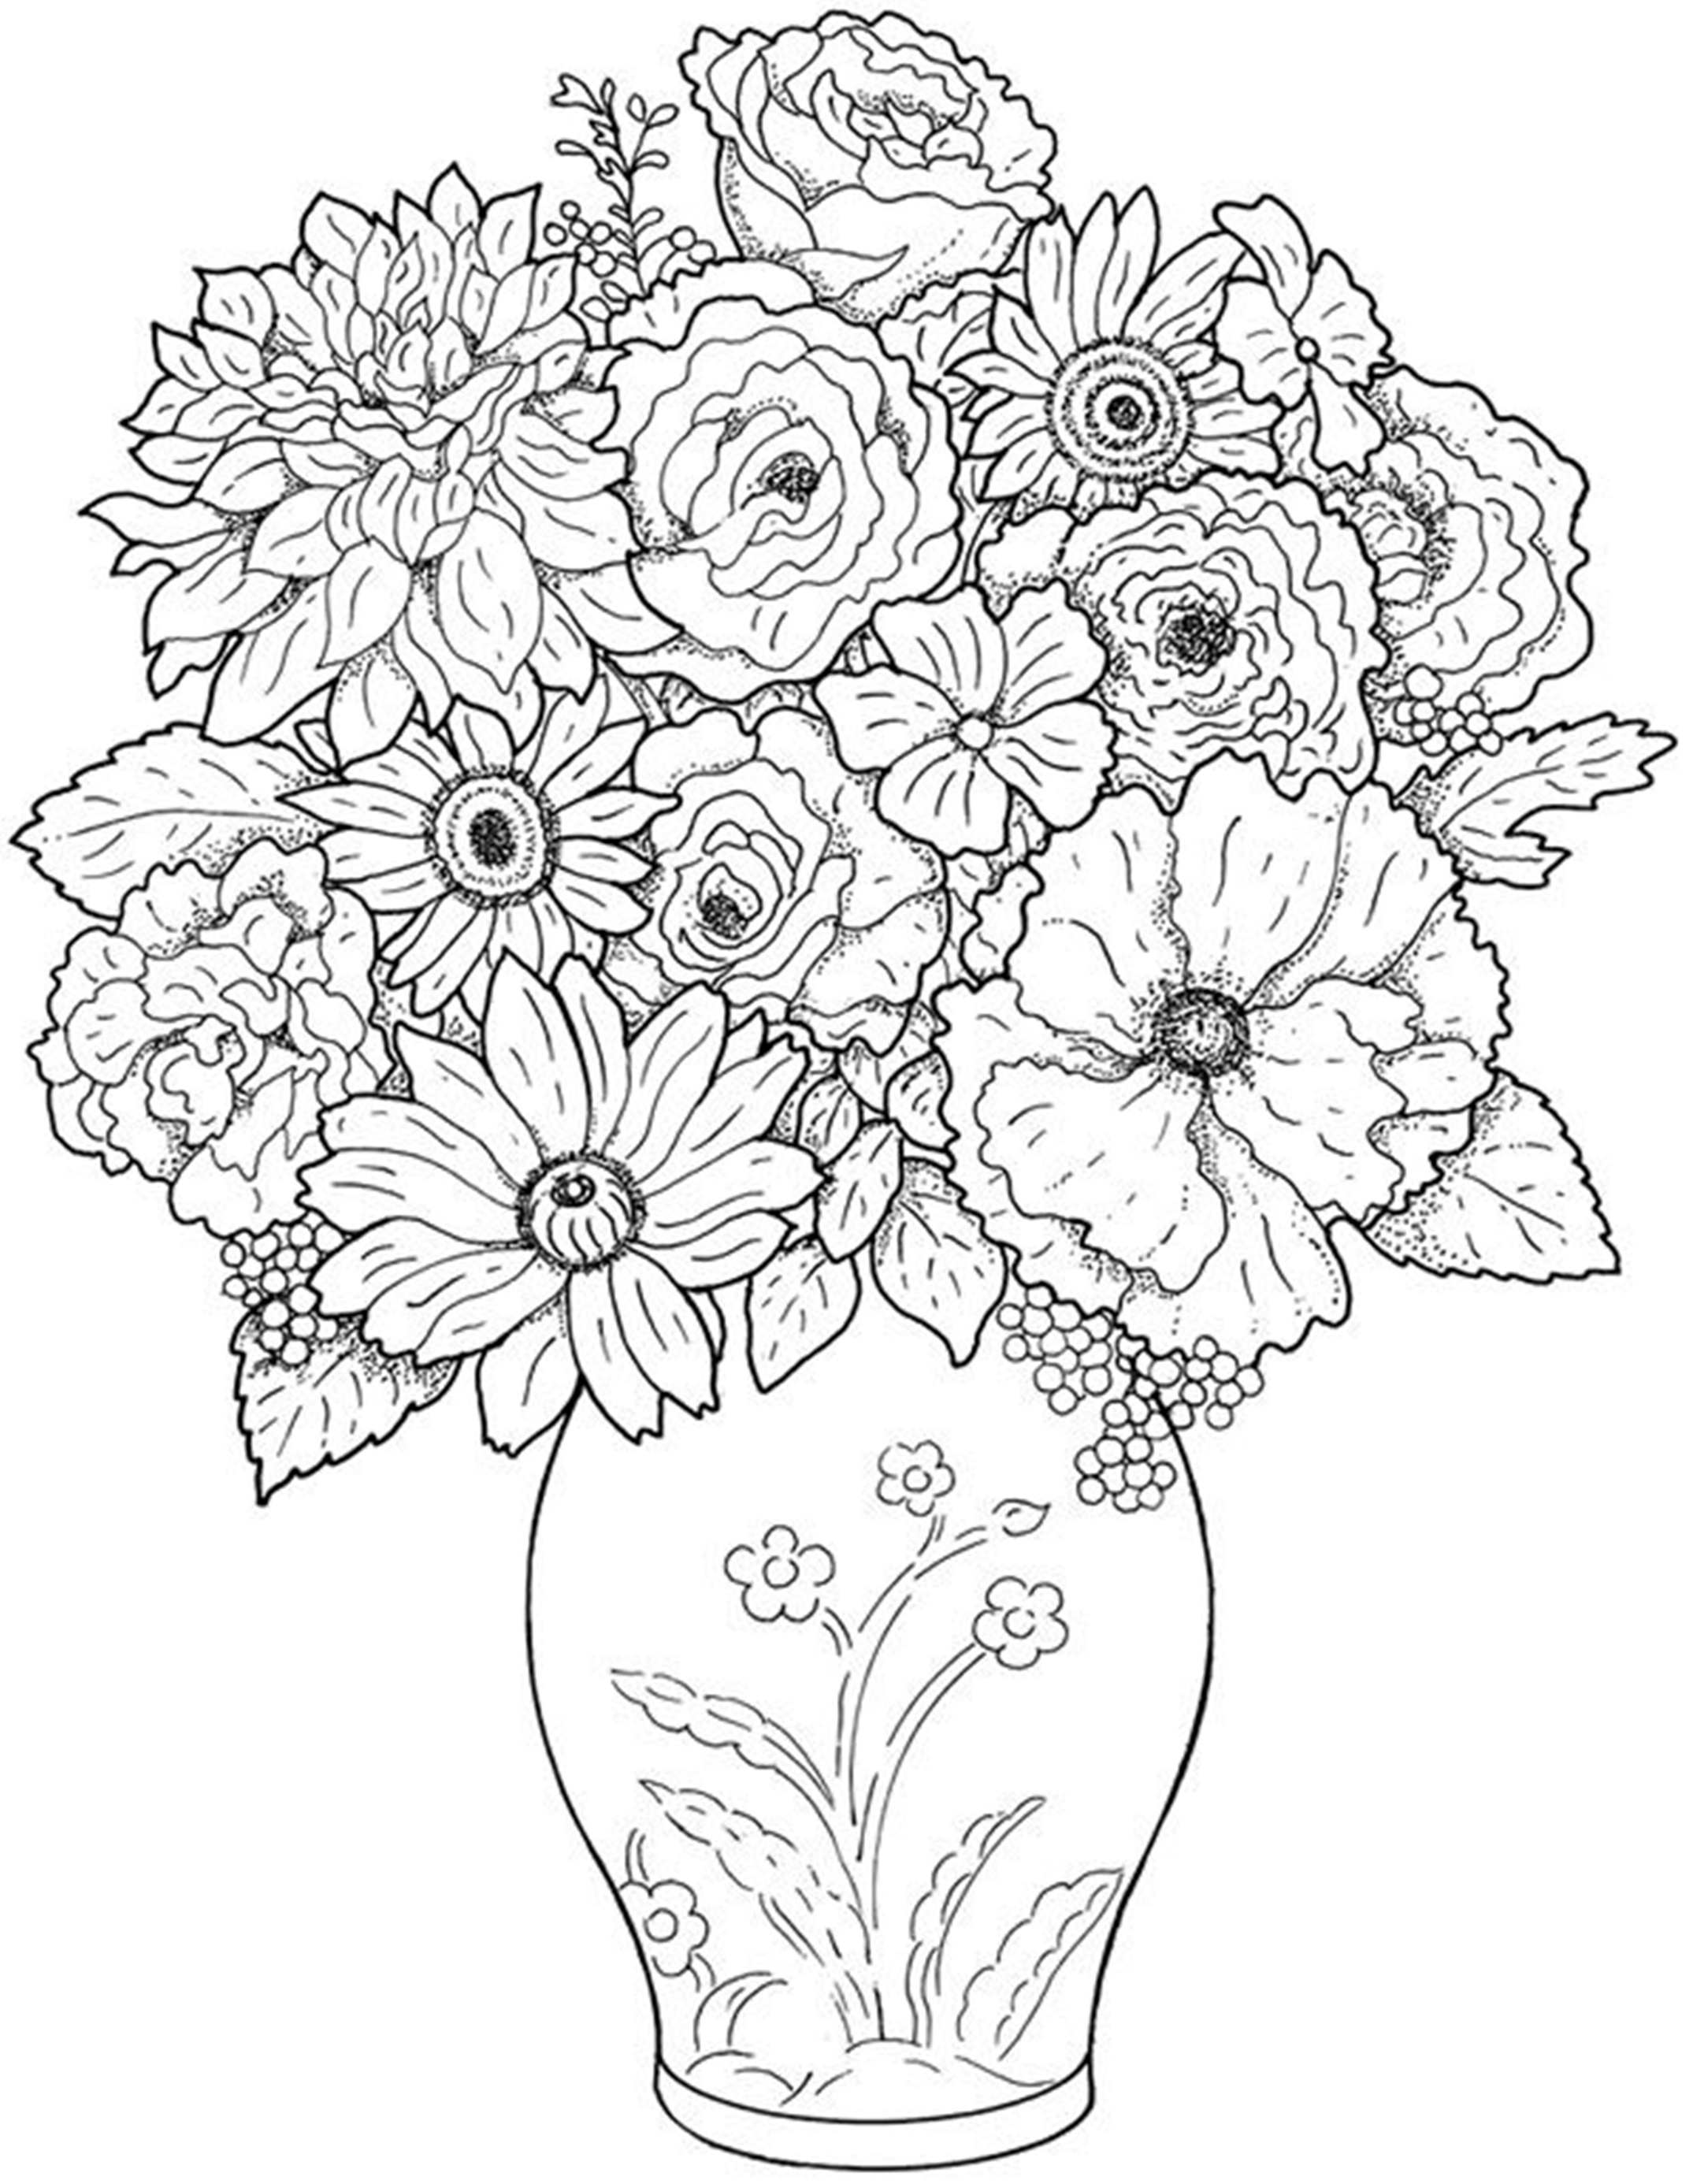 picture of flowers to colour free printable flower coloring pages for kids best to picture colour flowers of